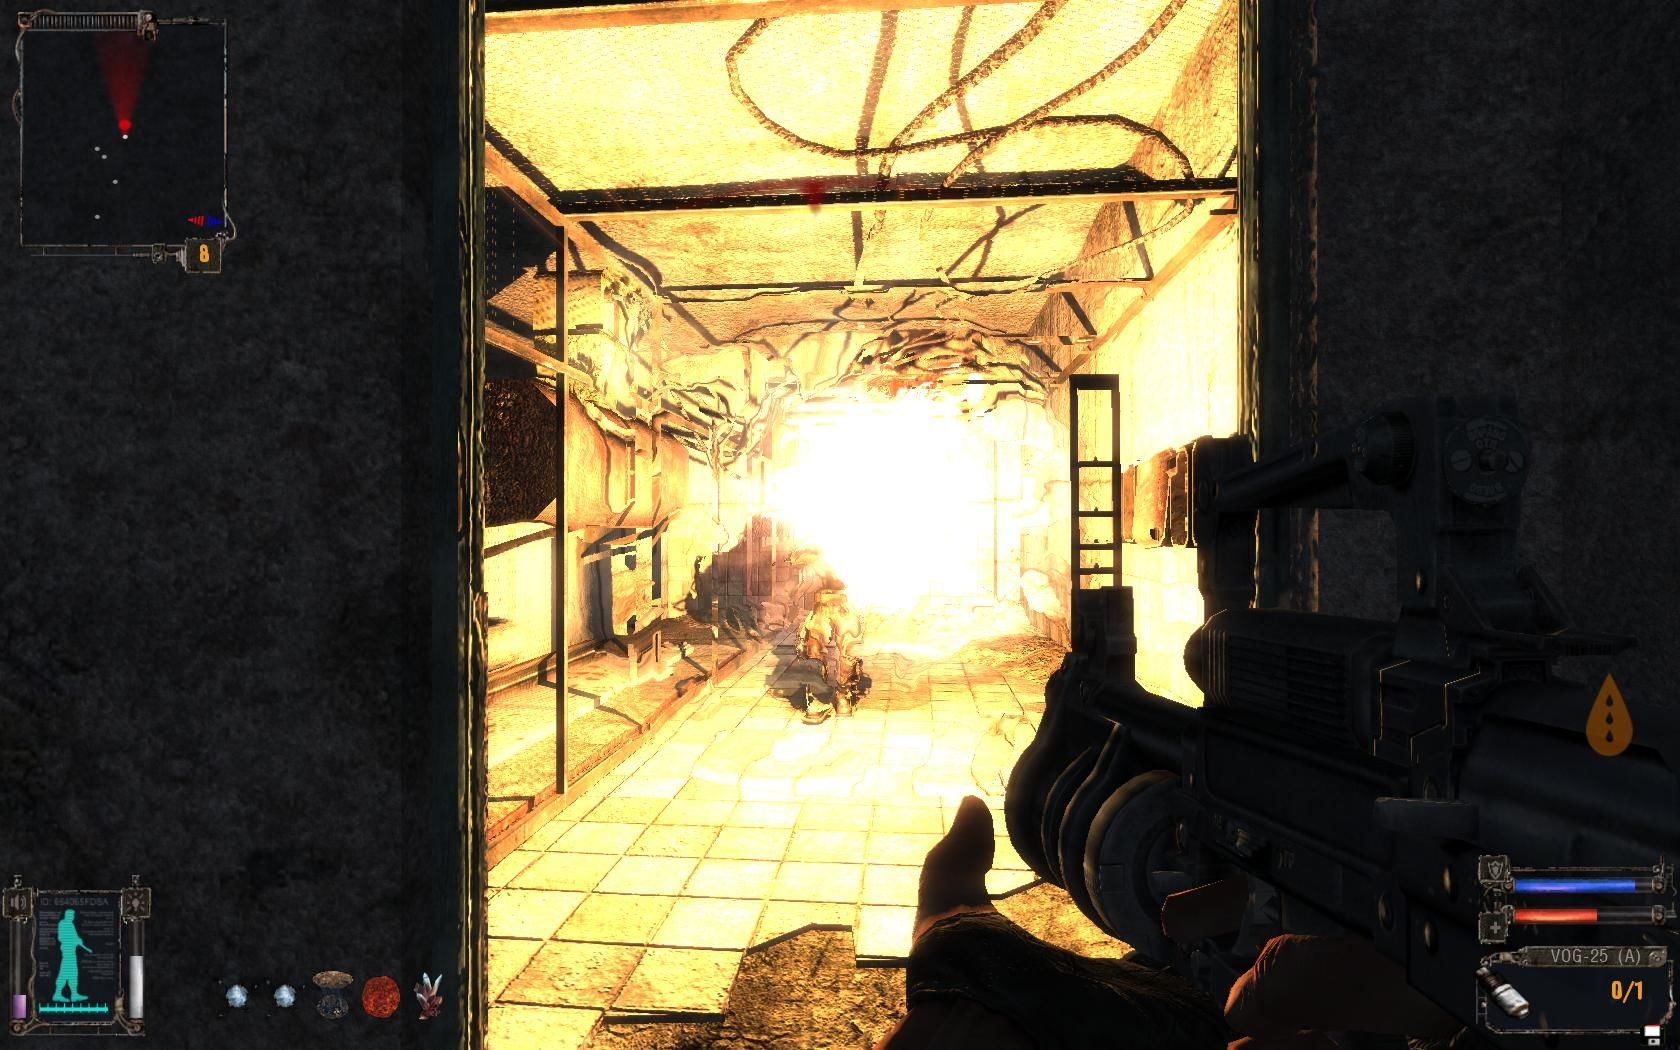 S.T.A.L.K.E.R.: Shadow of Chernobyl Windows Grenade explosion